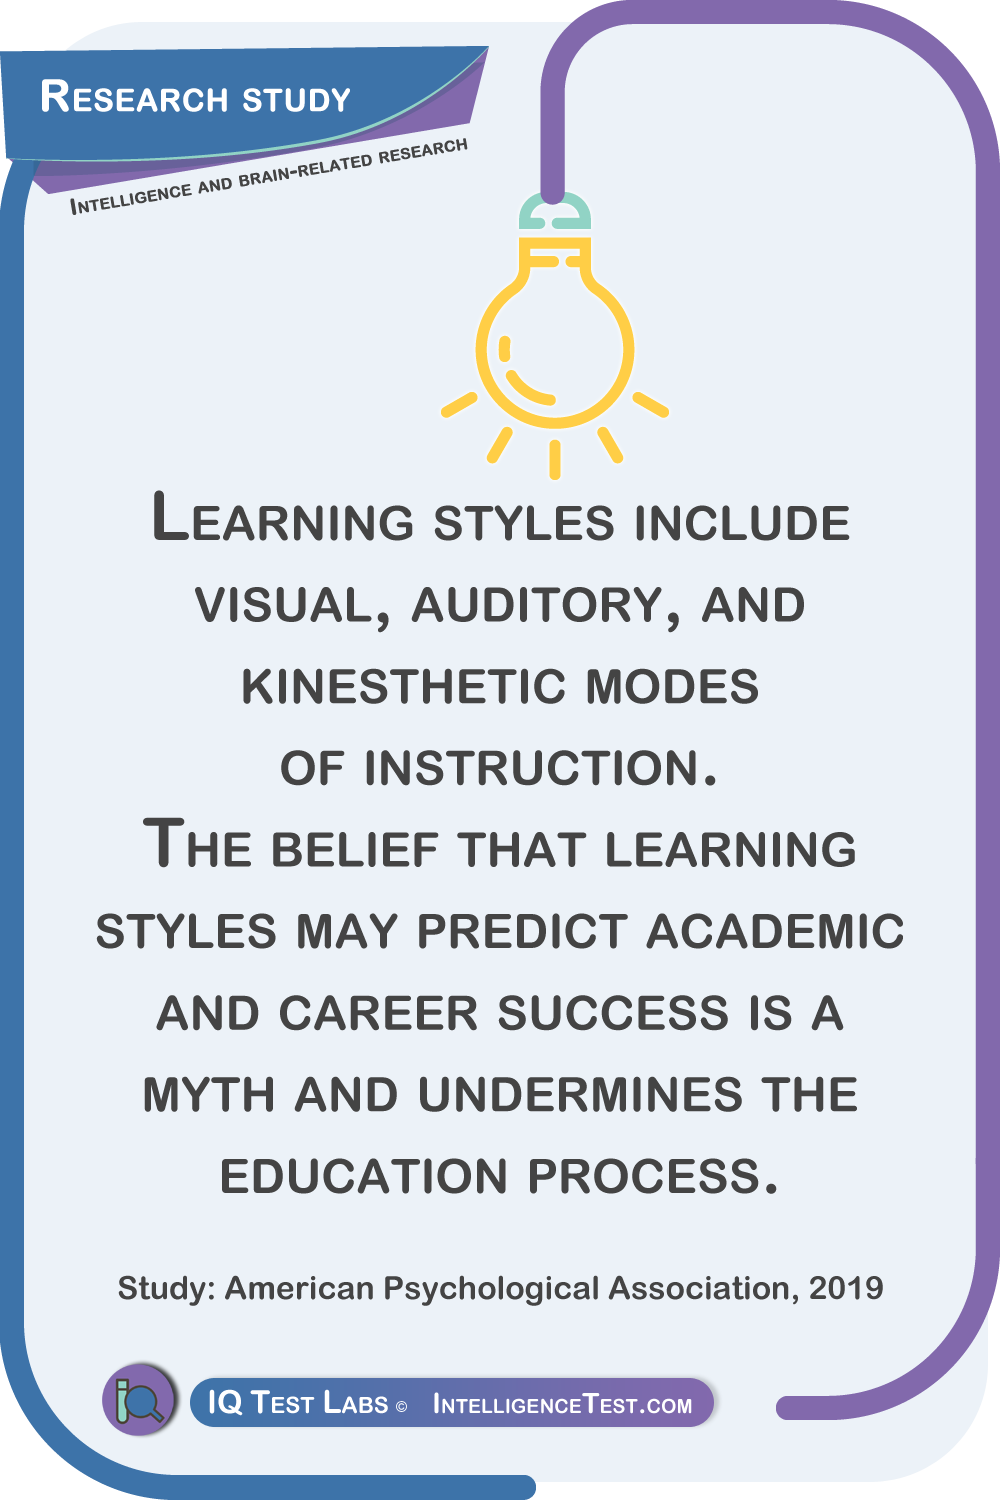 Learning styles include visual, auditory, and kinesthetic modes of instruction. The belief that learning styles may predict academic and career success is a myth and undermines the education process.